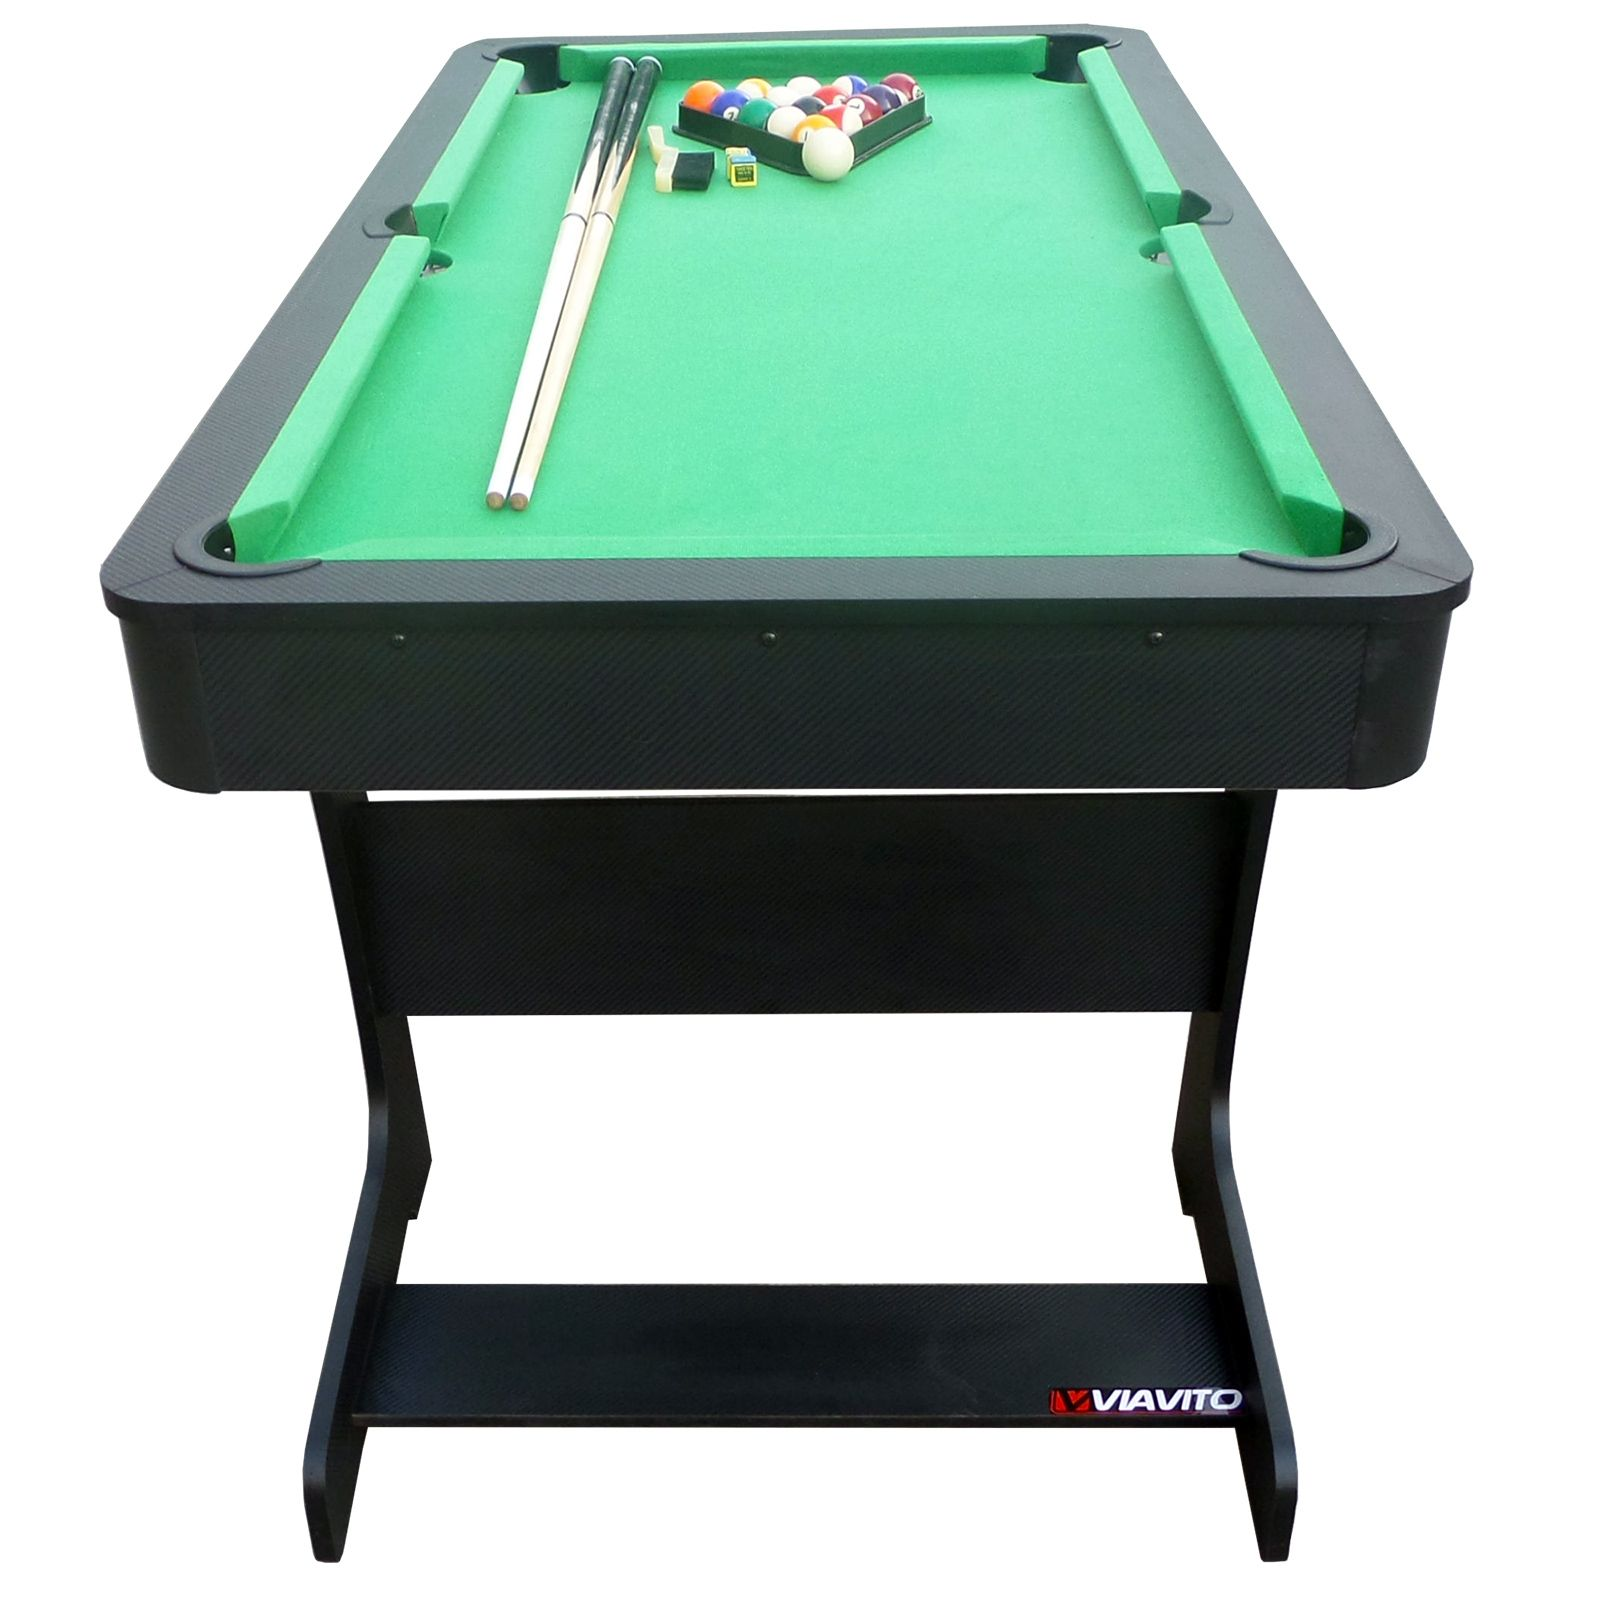 Viavito pt100x 5ft folding pool table for Html table in table